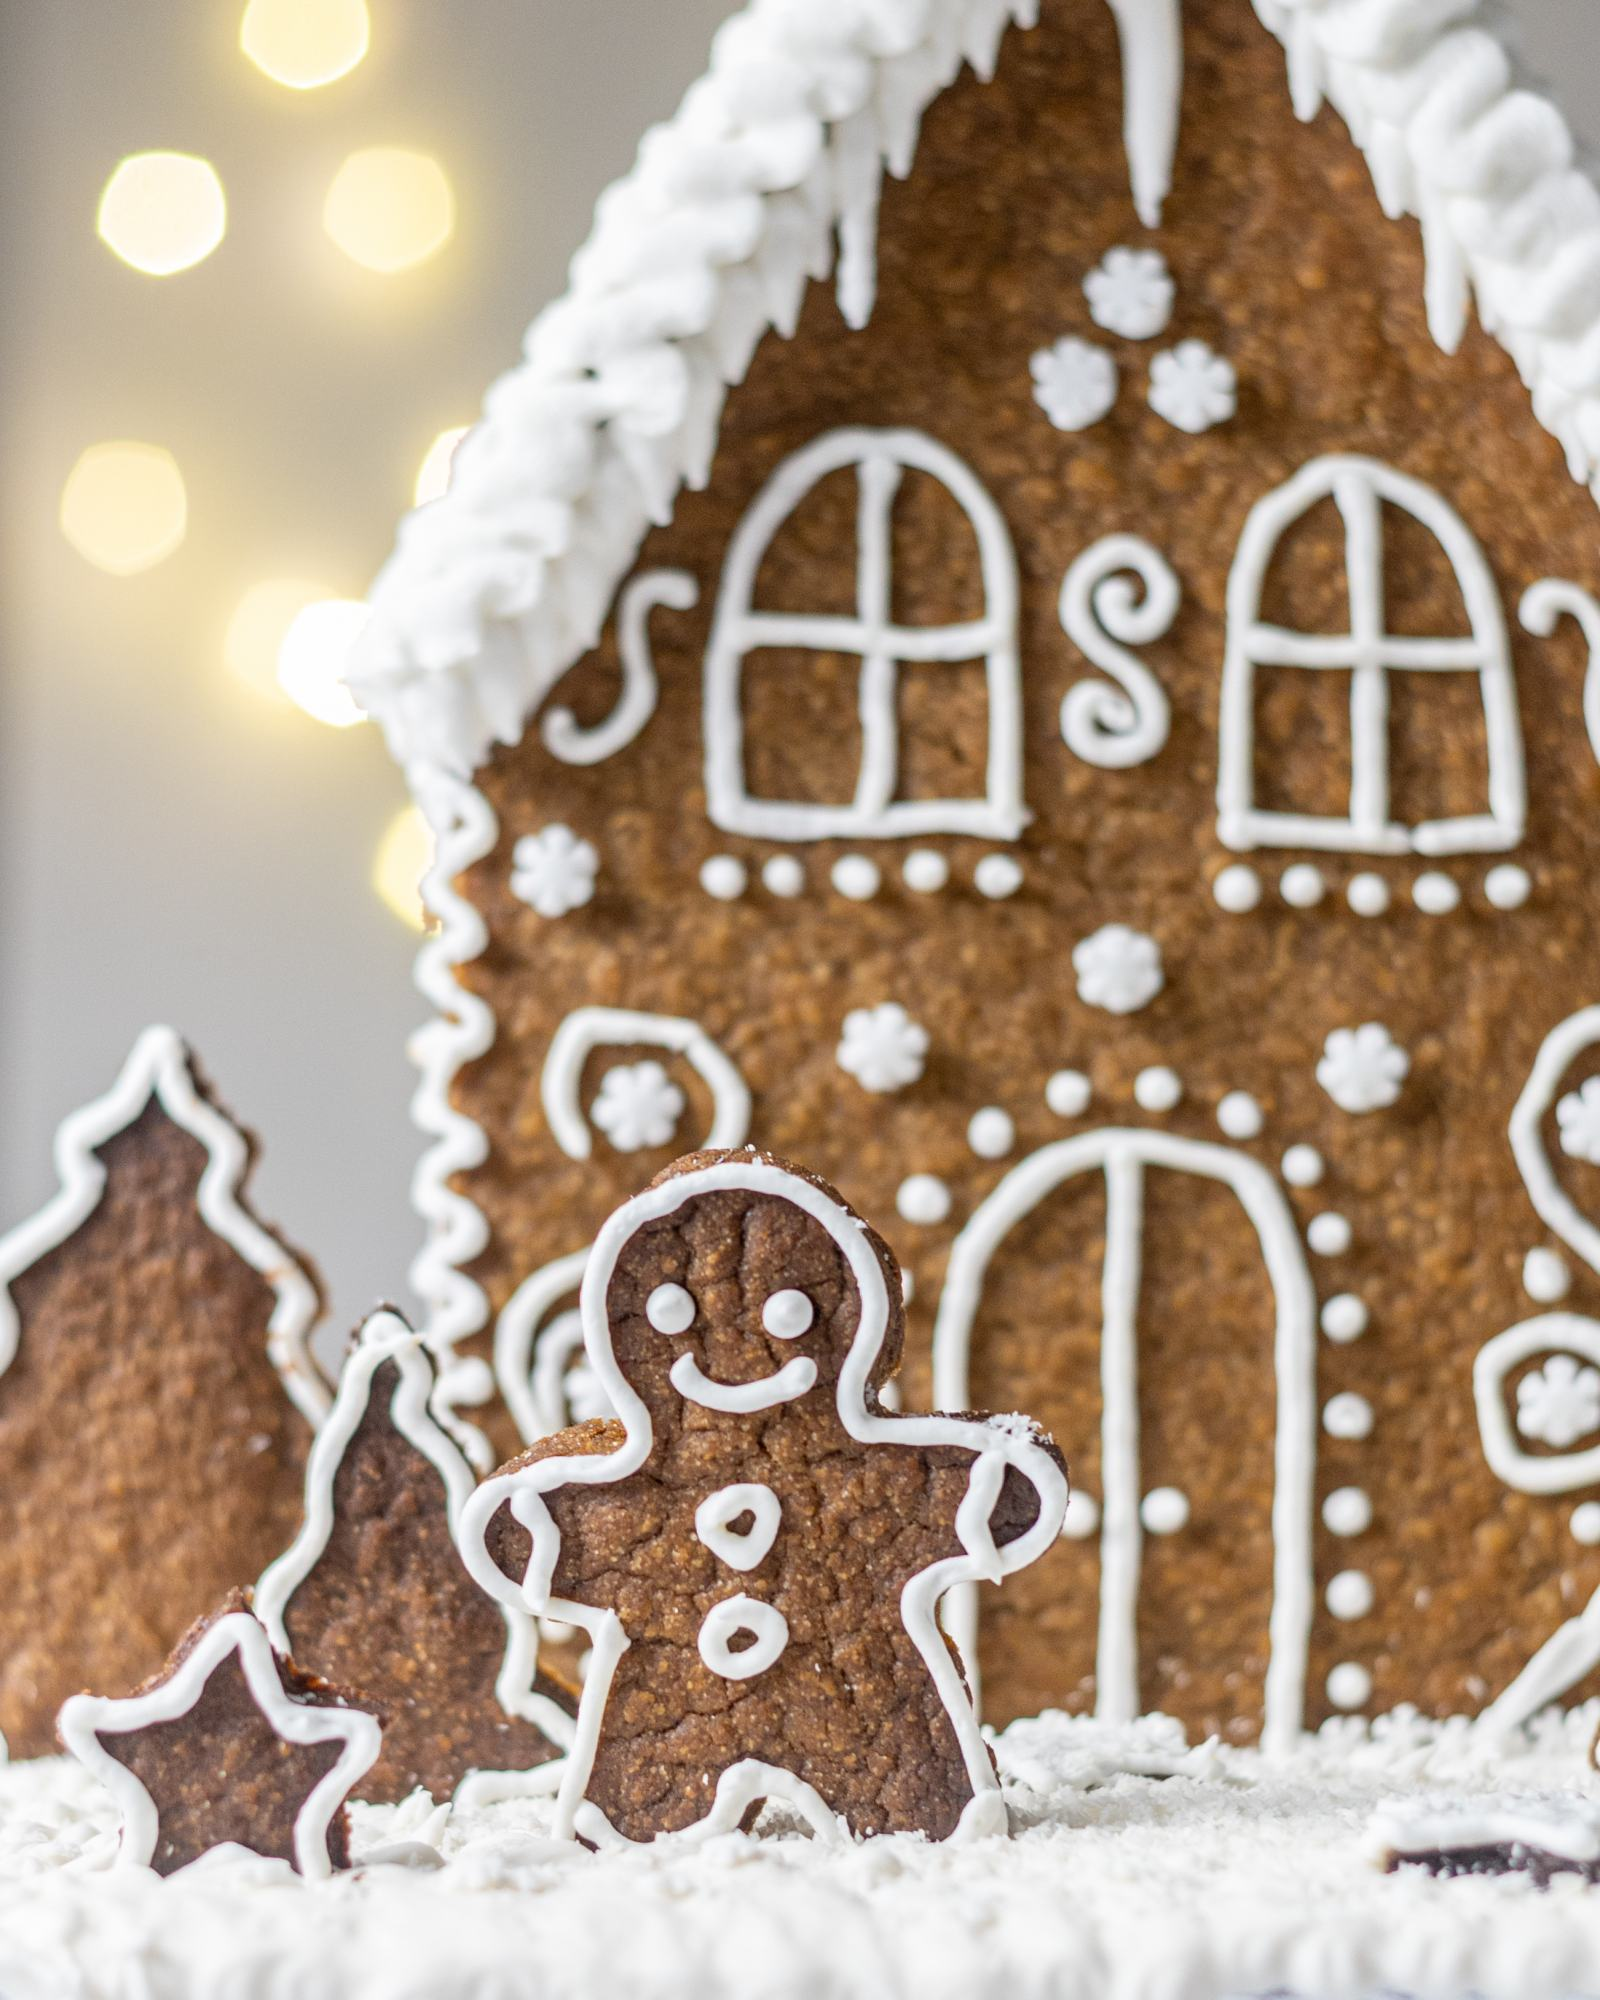 Vegan Gingerbread House, decorated with white buttercream and 'Ho Ho' written on the back, with white roof, photographed on a light backdrop with fairy lights, a gingerbread man standing in front of